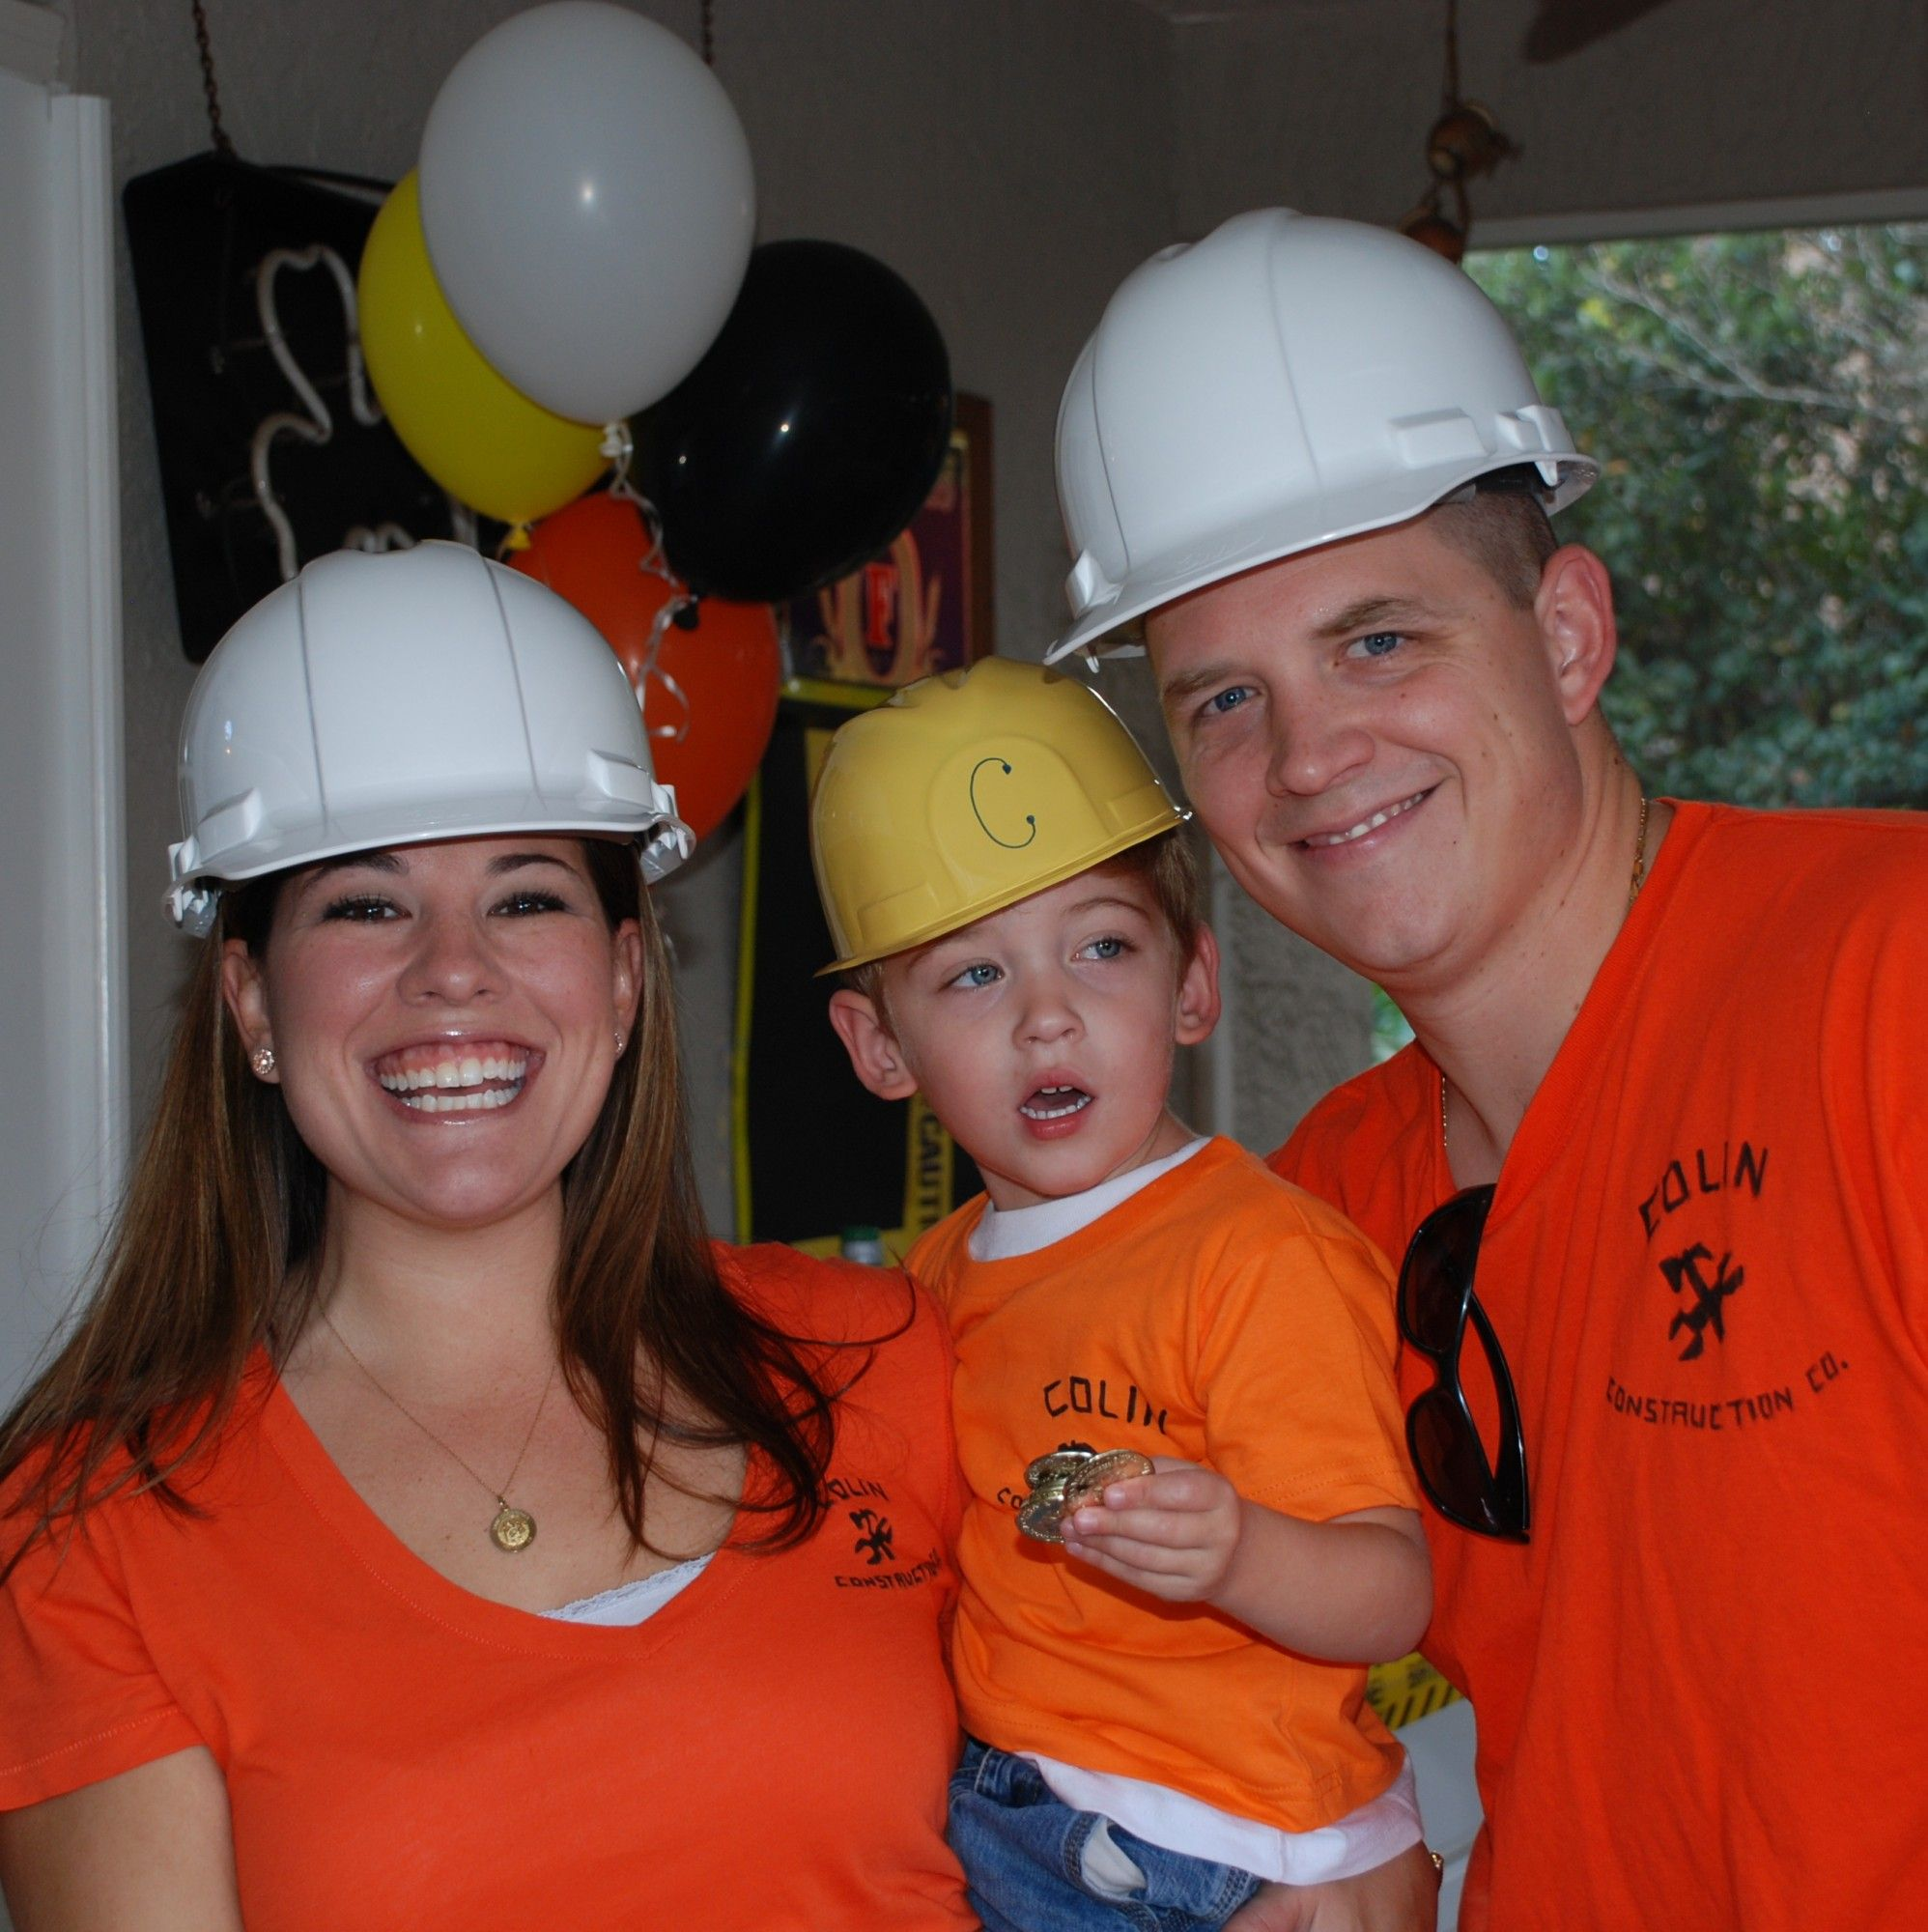 construction birthday shirts